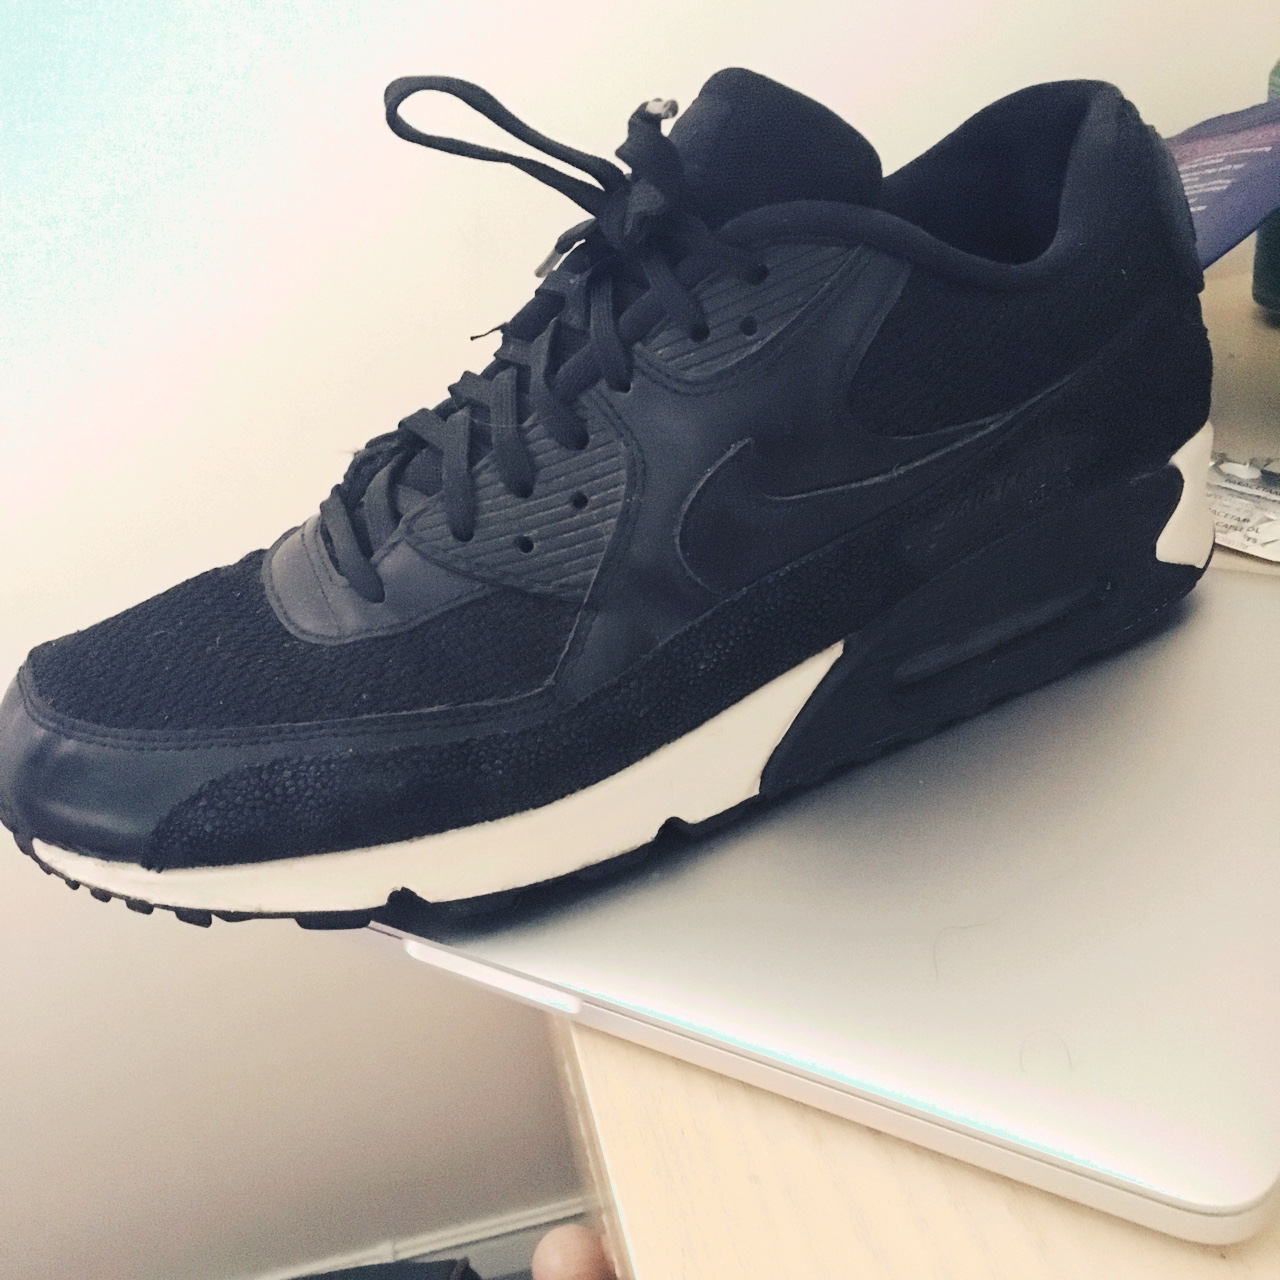 brand new e9dc7 ce852 Nike Air Max 90 stingray pack size 12. Will fit 11... - Depop